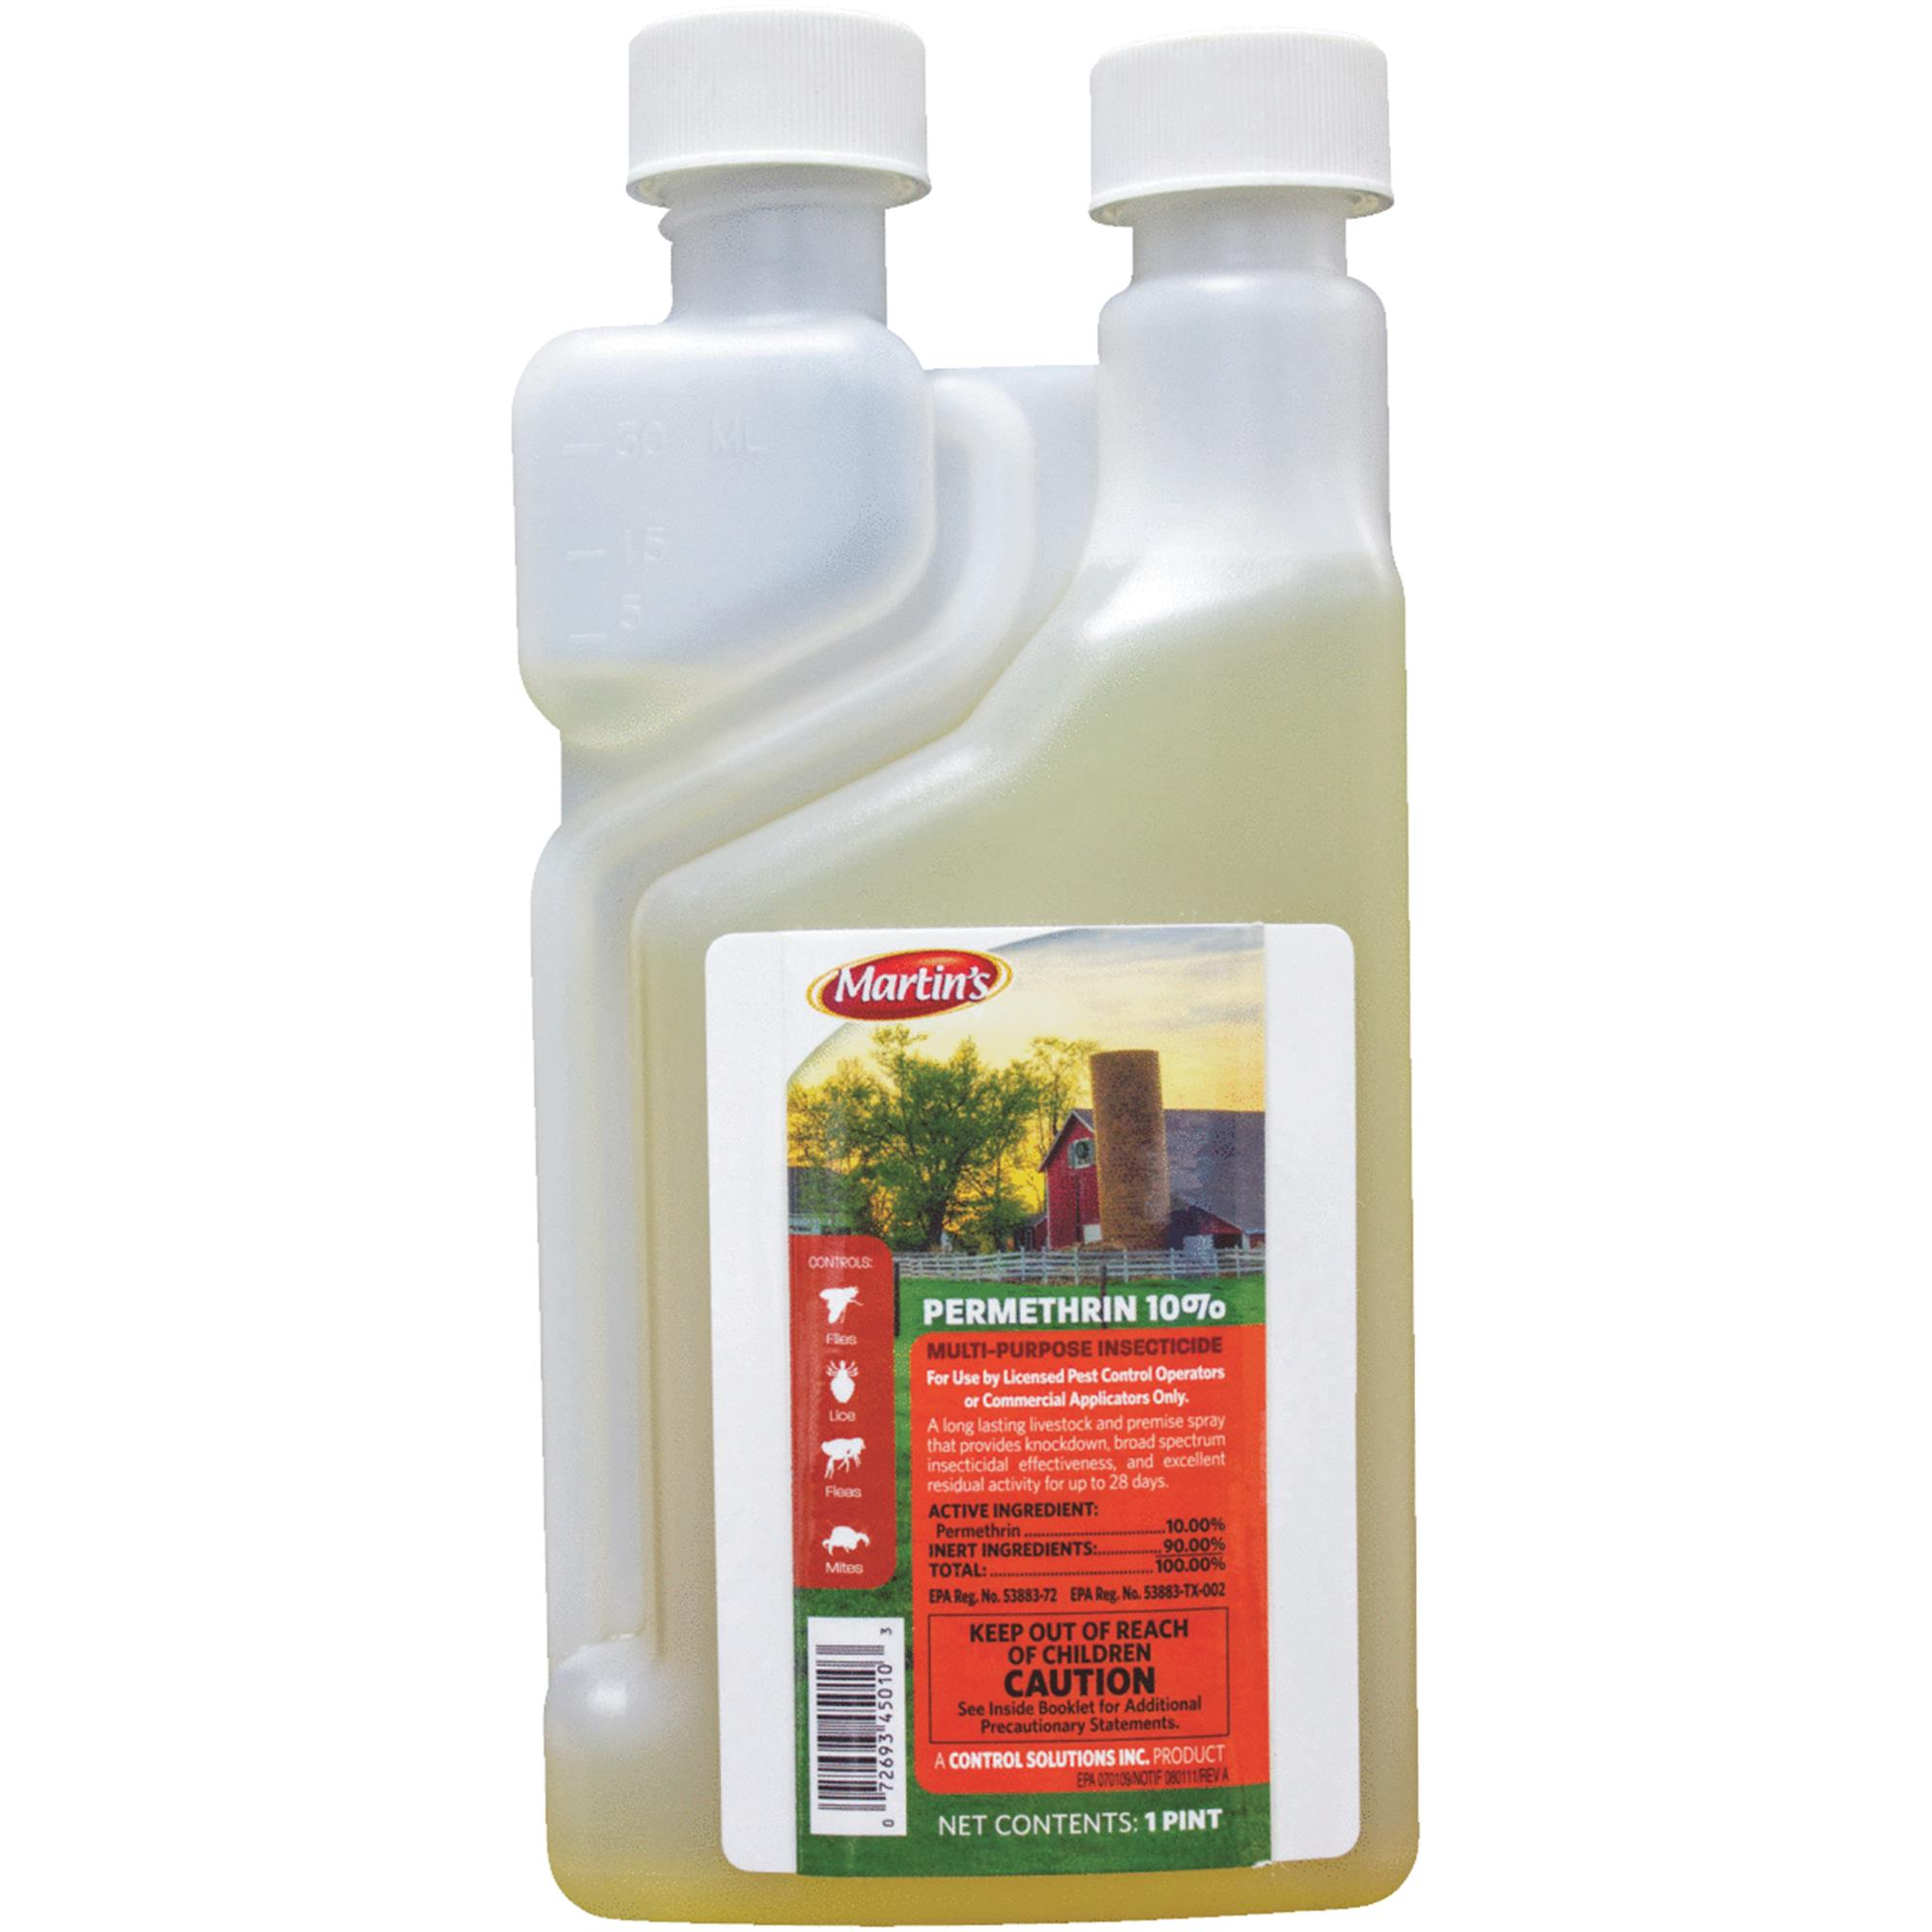 Martin's Permethrin 10% Multi-Purpose Insect Killer